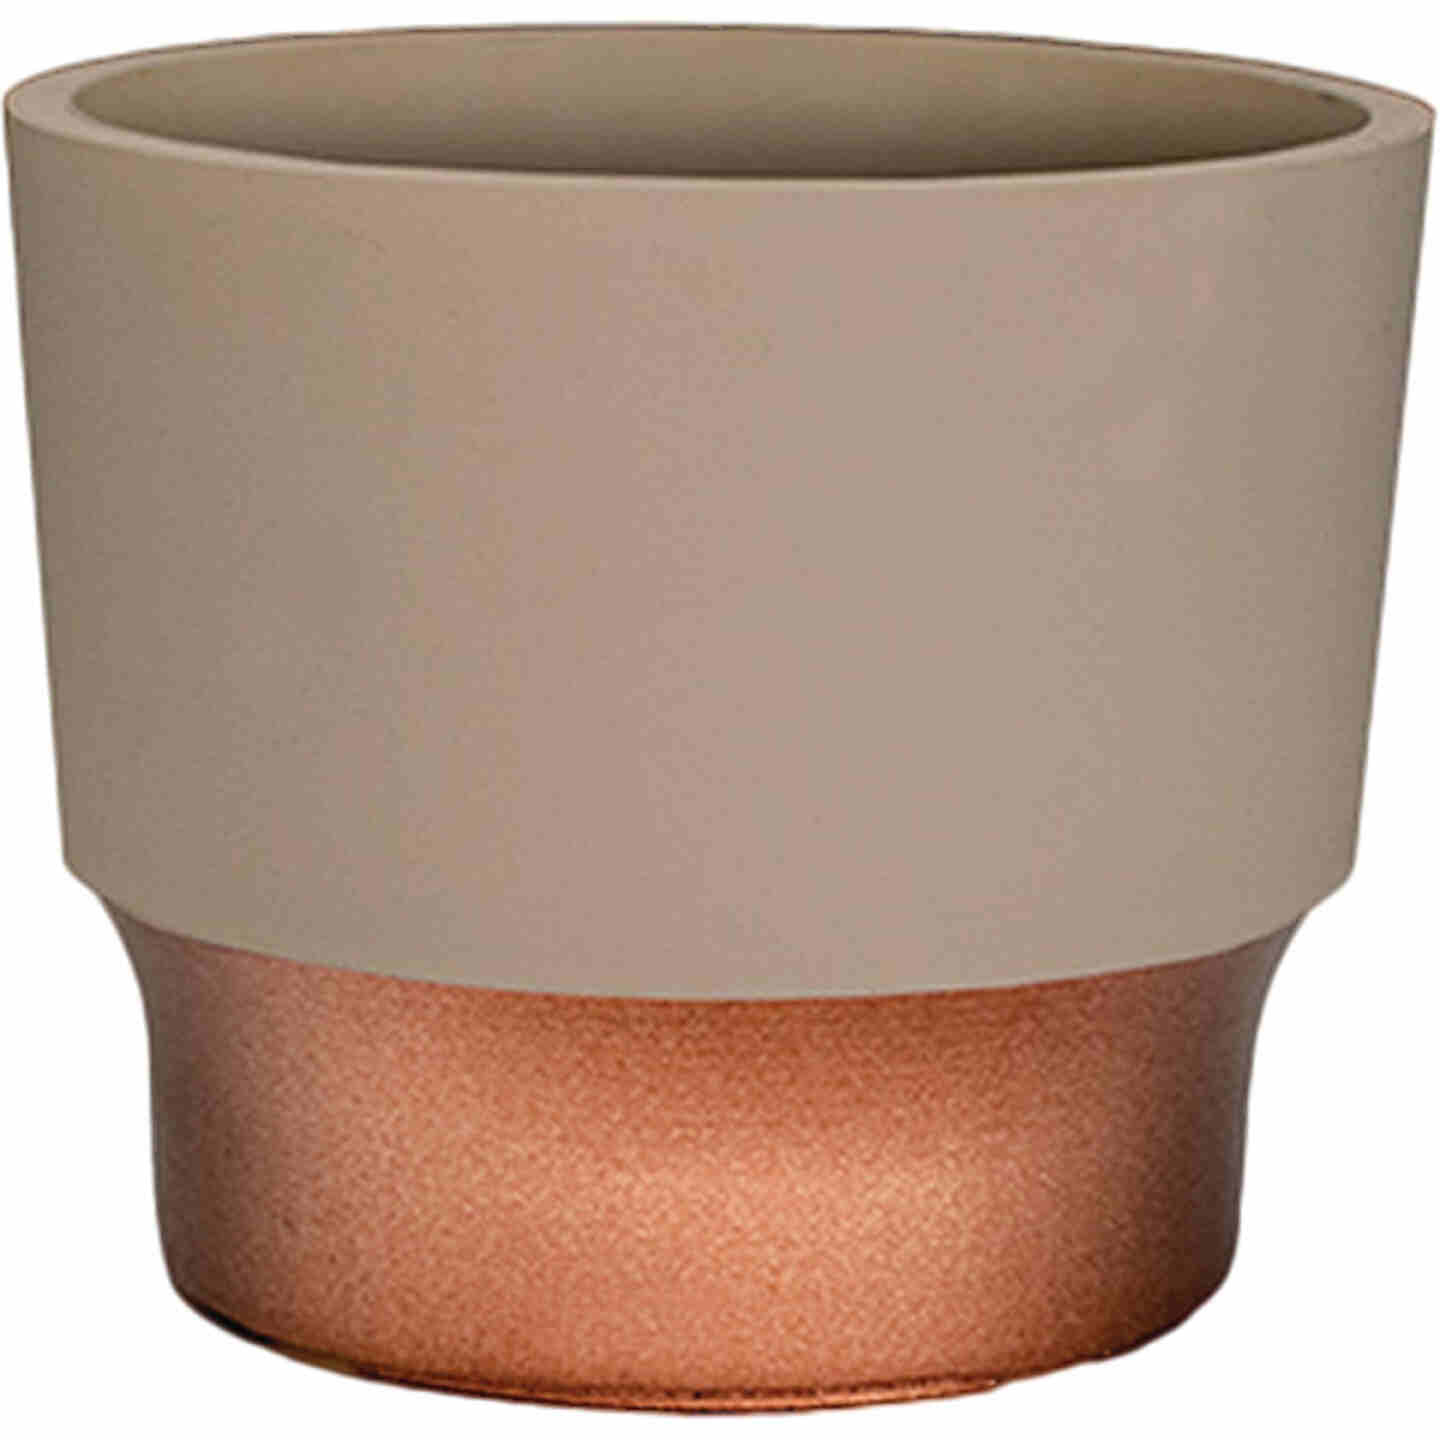 HC Companies Sprite 3 In. x 3 In. x 2.5 In. Resin Artisan Taupe Succulent Pot Image 1